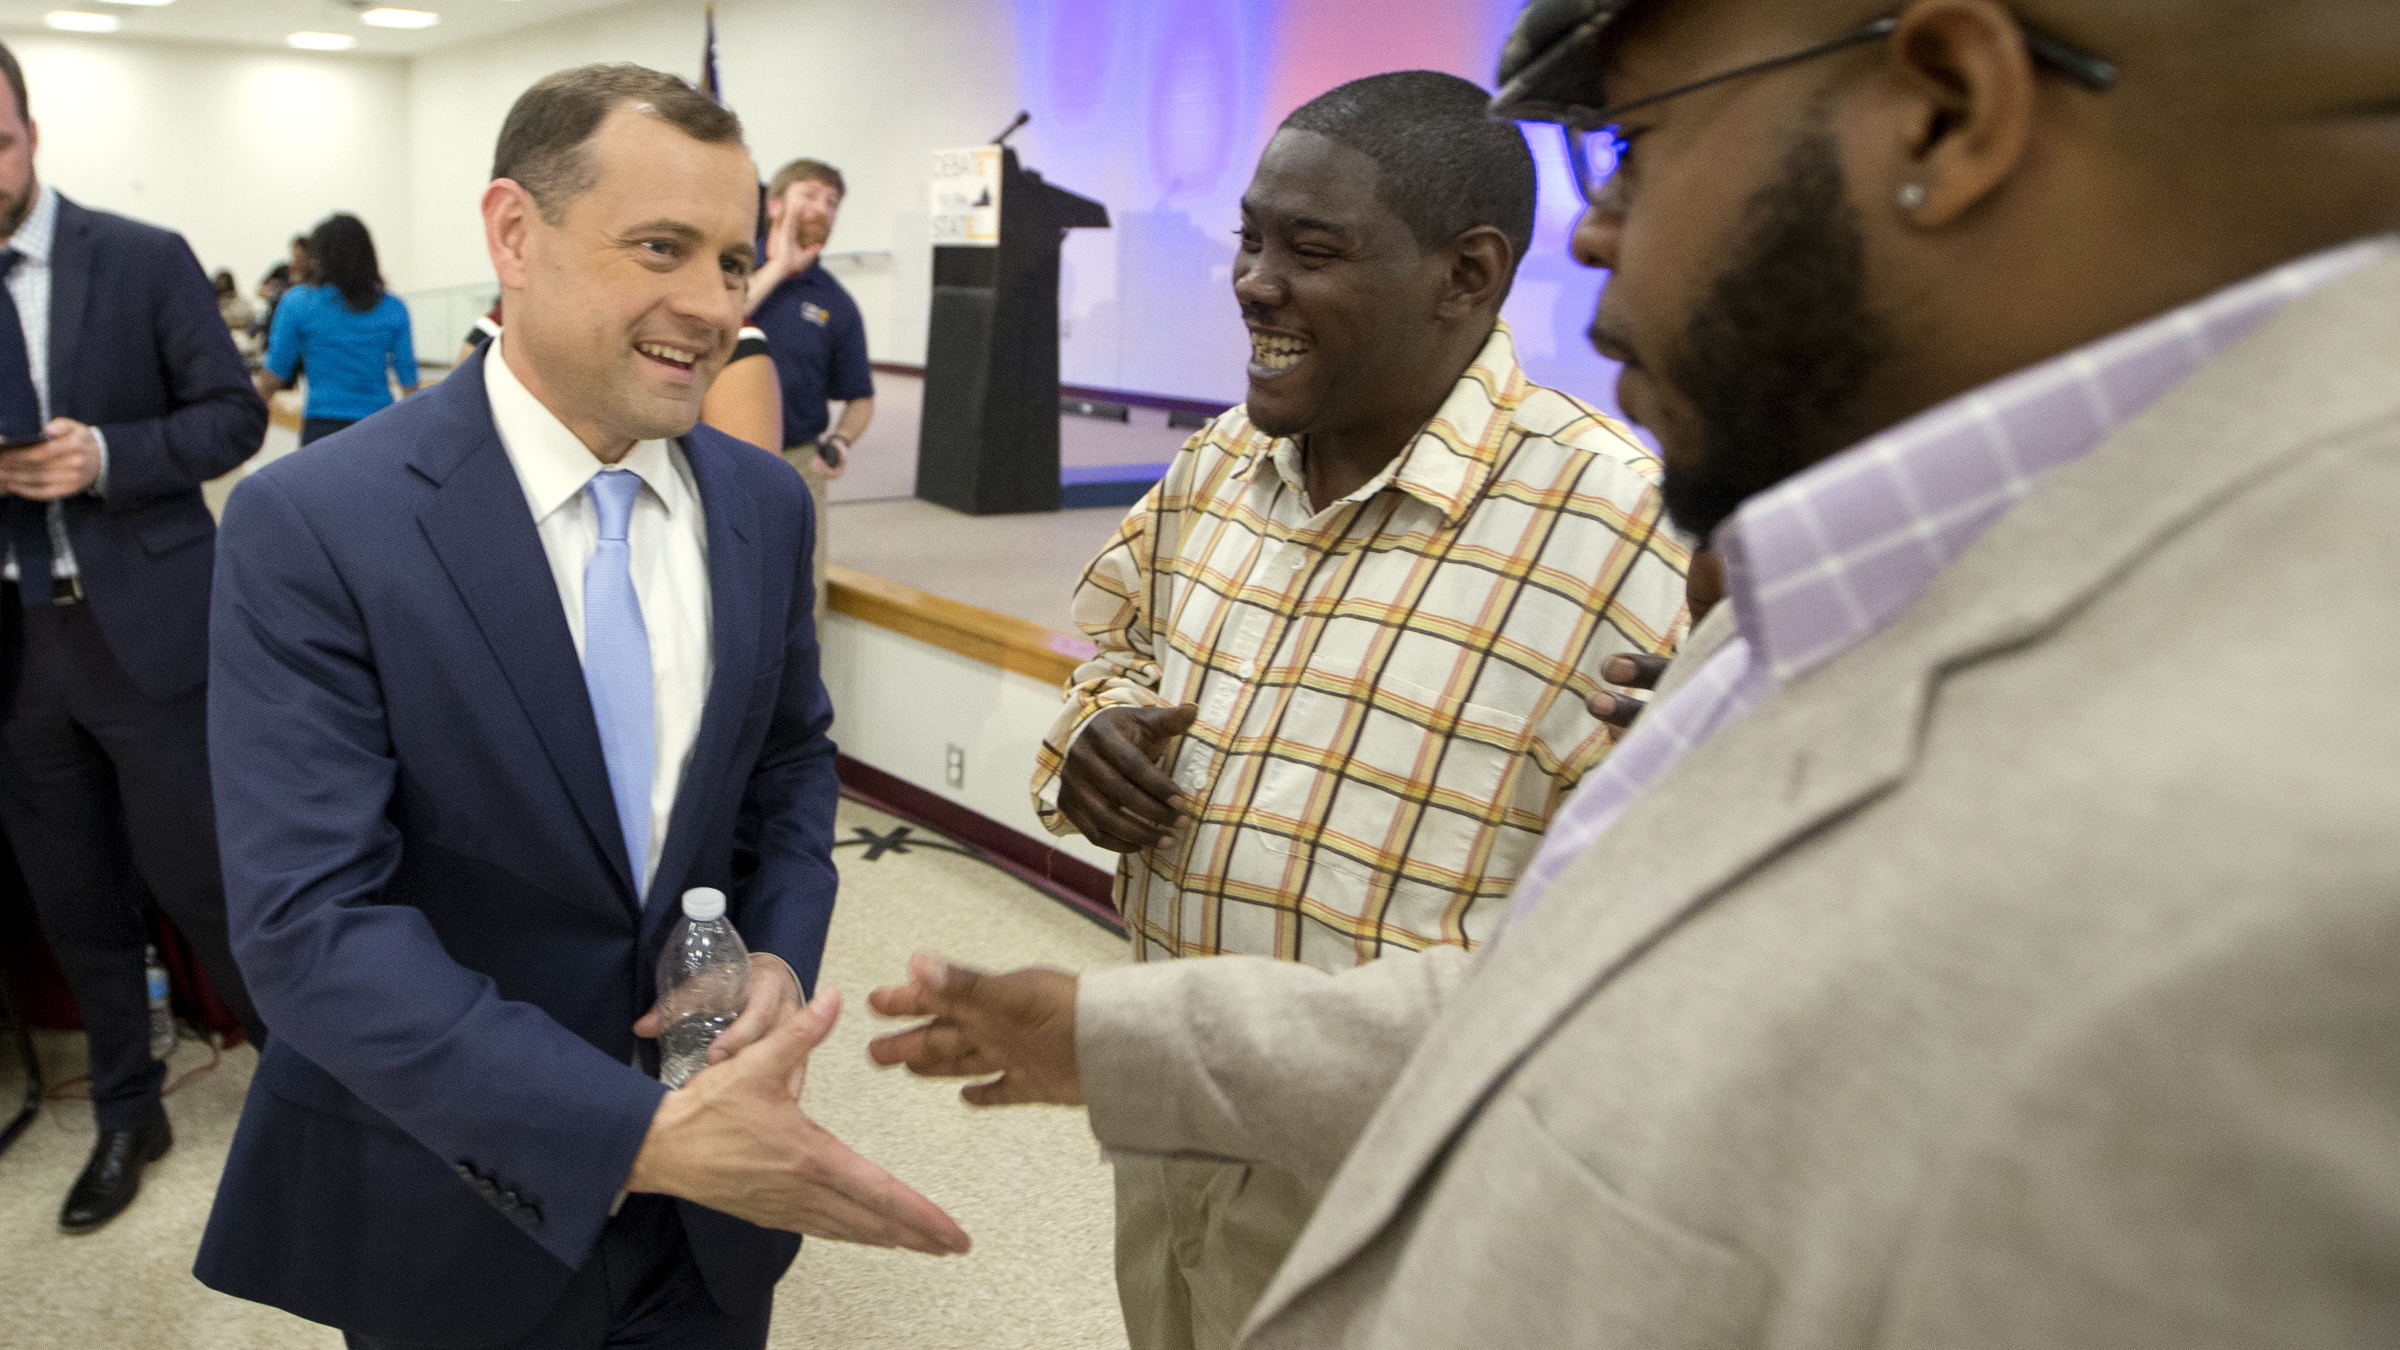 Democratic Gubernatorial candidate former Congressman Tom Perriello, left, greets supporters after a debate at a Union hall in Richmond, Va., Tuesday, May 9, 2017. The two candidates face off in the June 13th primary.